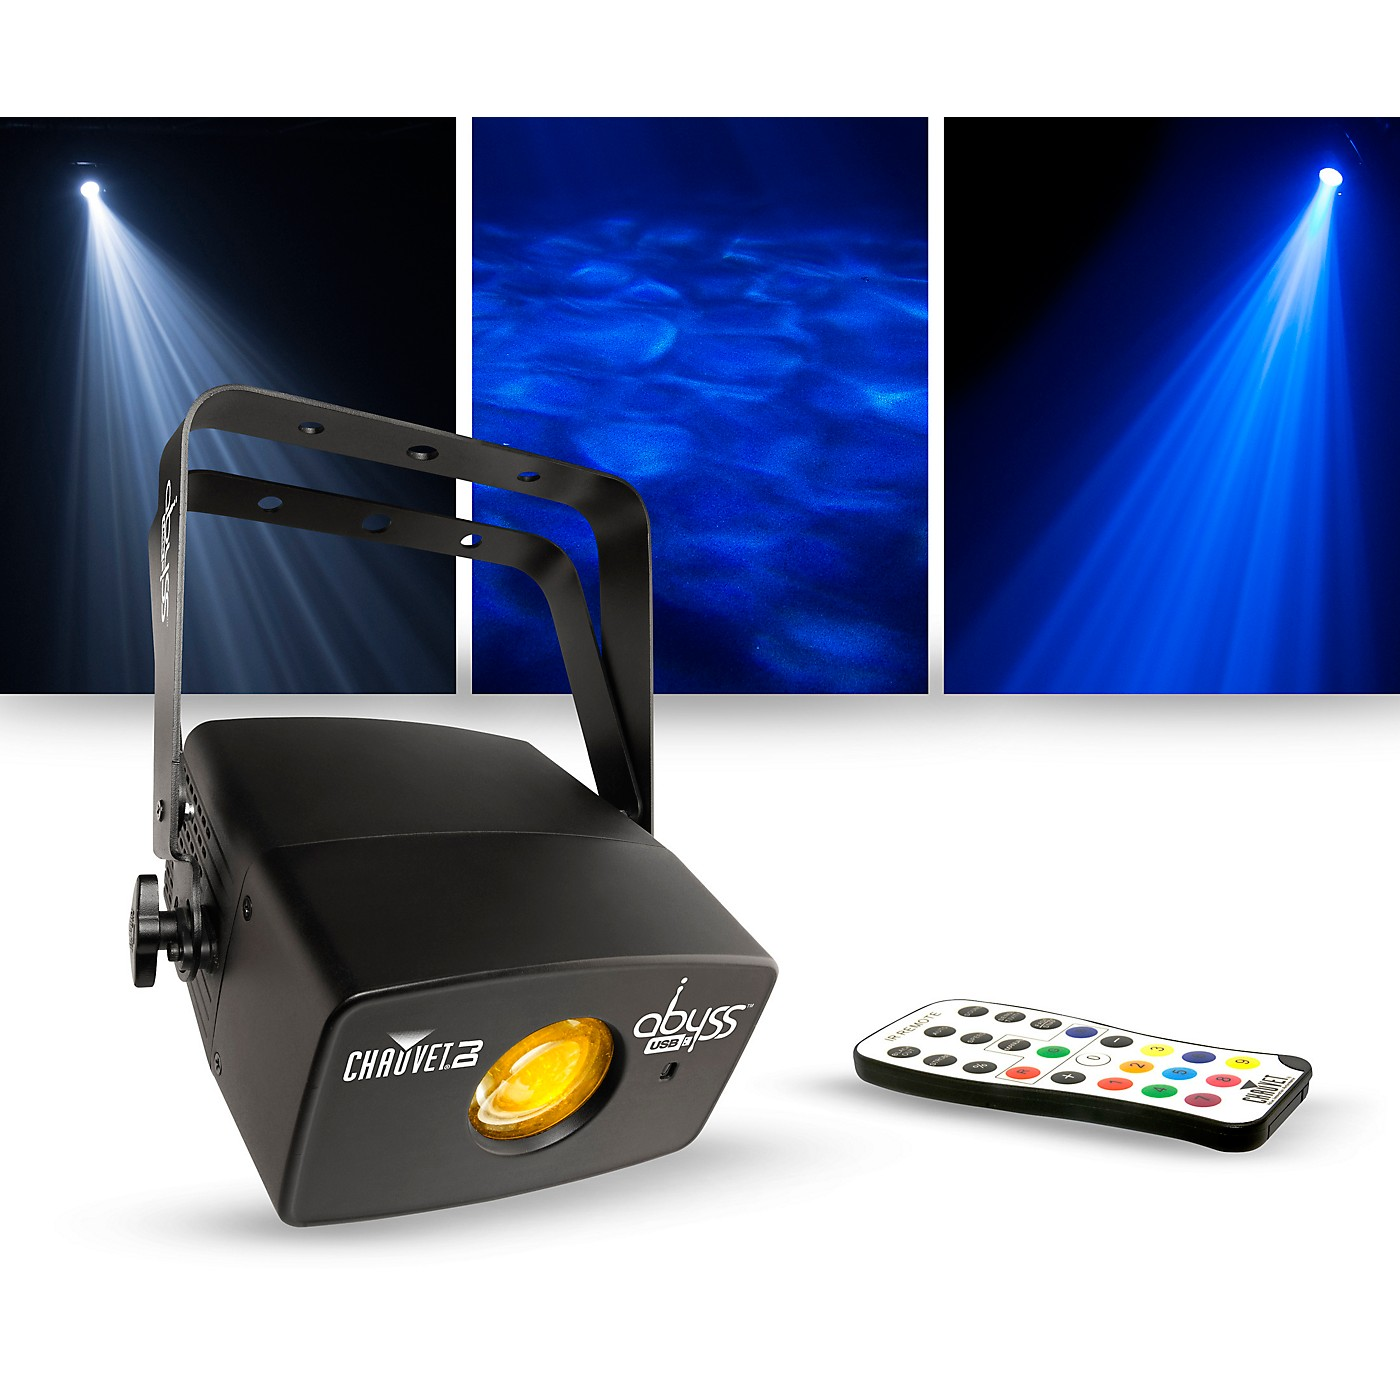 CHAUVET DJ Lighting Package with Abyss USB Multicolored Water Effect and IRC-6 Controller thumbnail